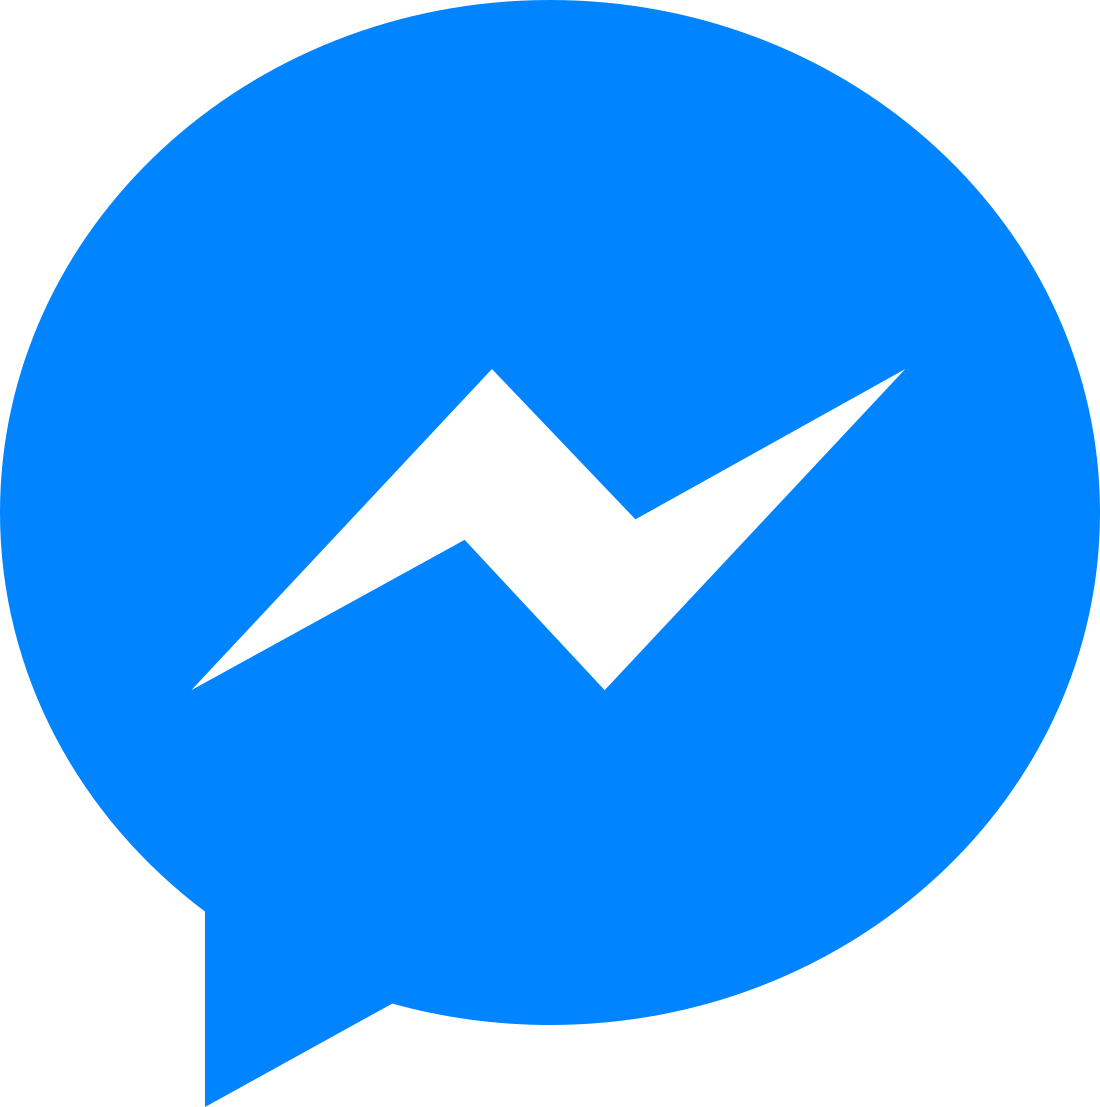 facebook messenger logo 3 - Facebook Messenger Logo